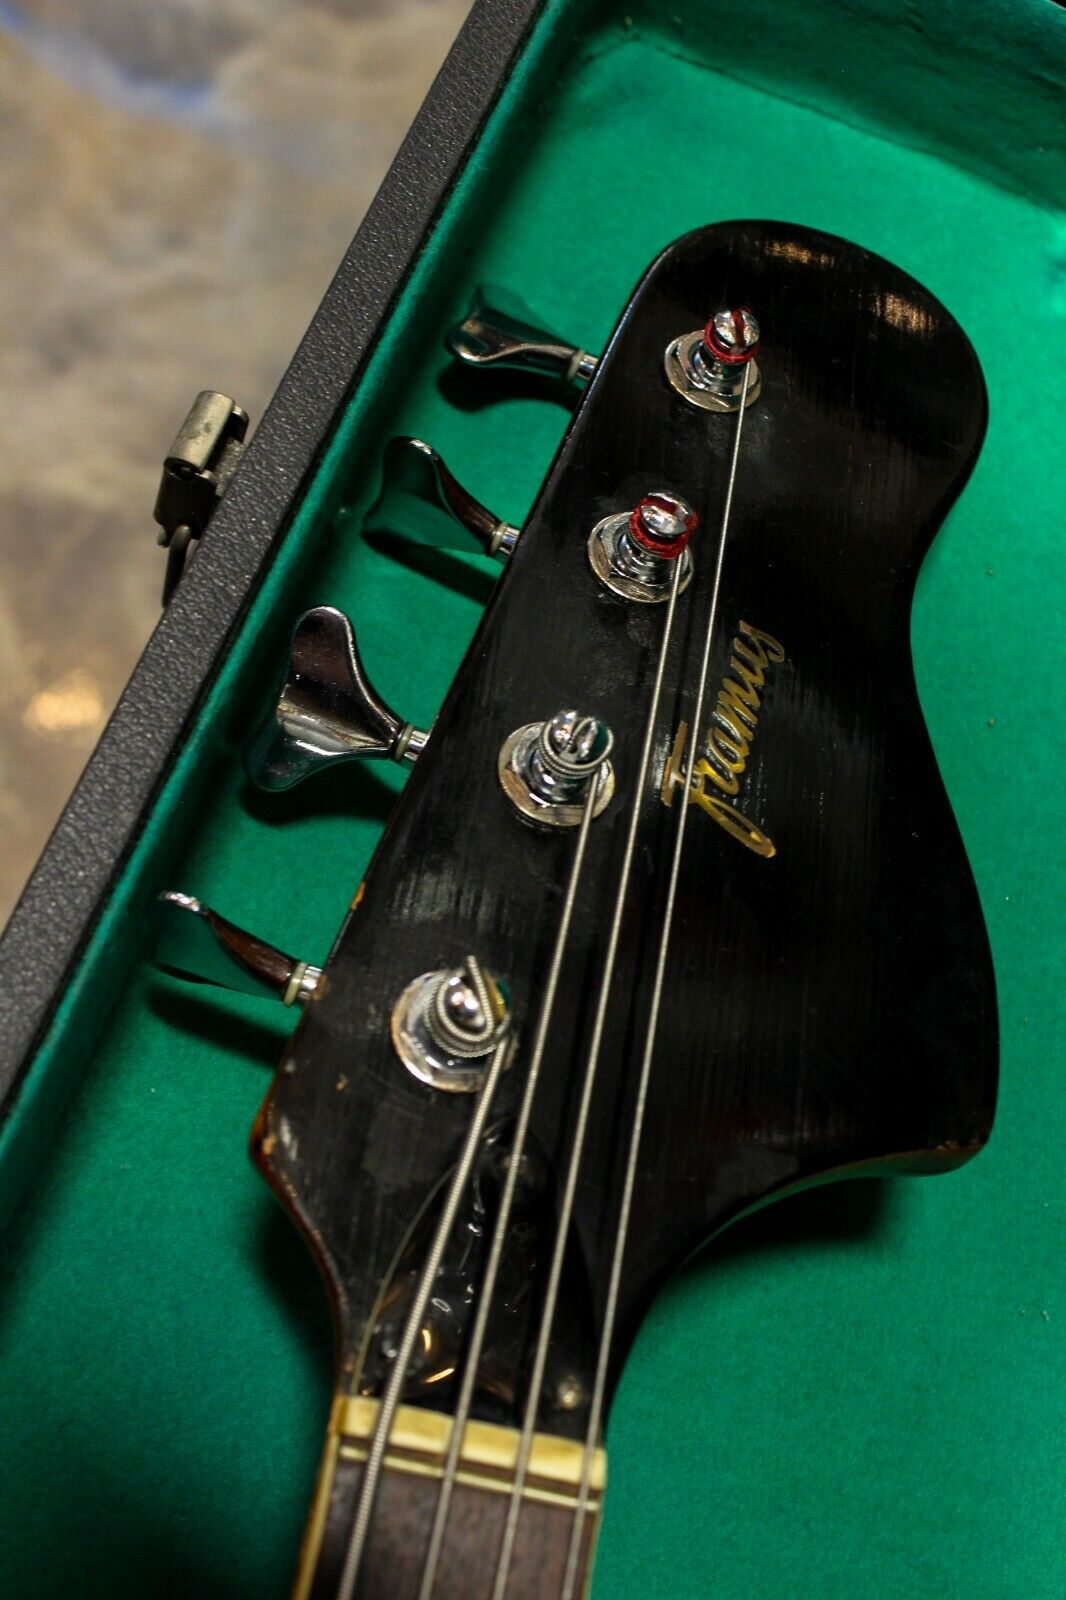 Vintage 1965 1965 1965 Framus 5 165-52GL Strato De Luxe Star Bass Flamed Top Back 2cabf2